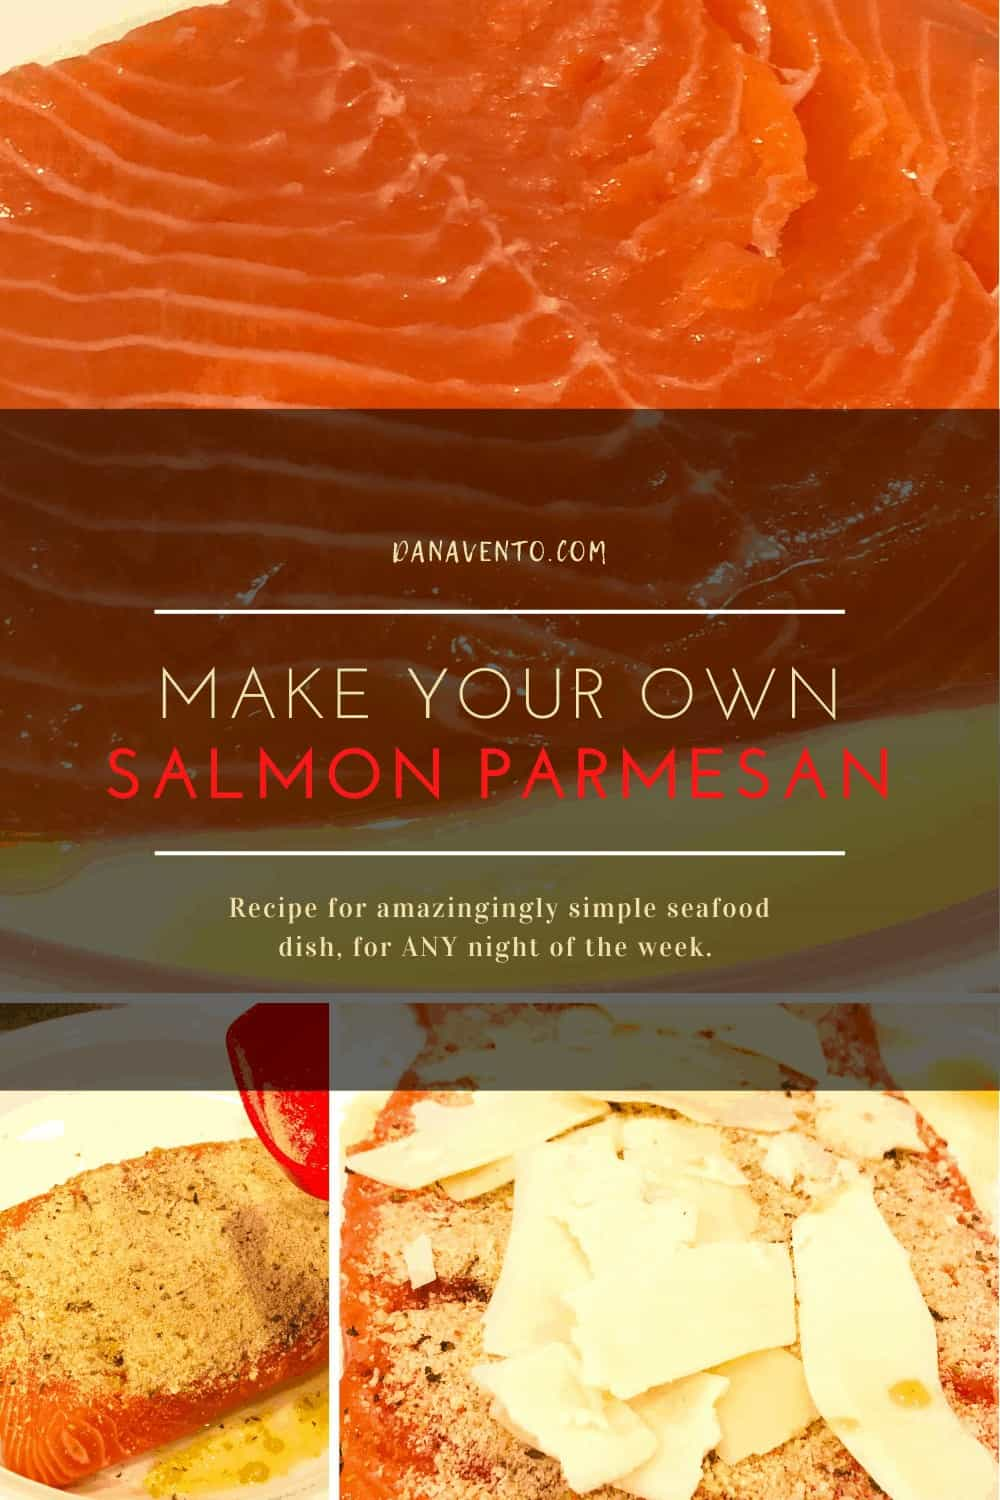 Ingredients in Salmon Parmesan, including raw salmon